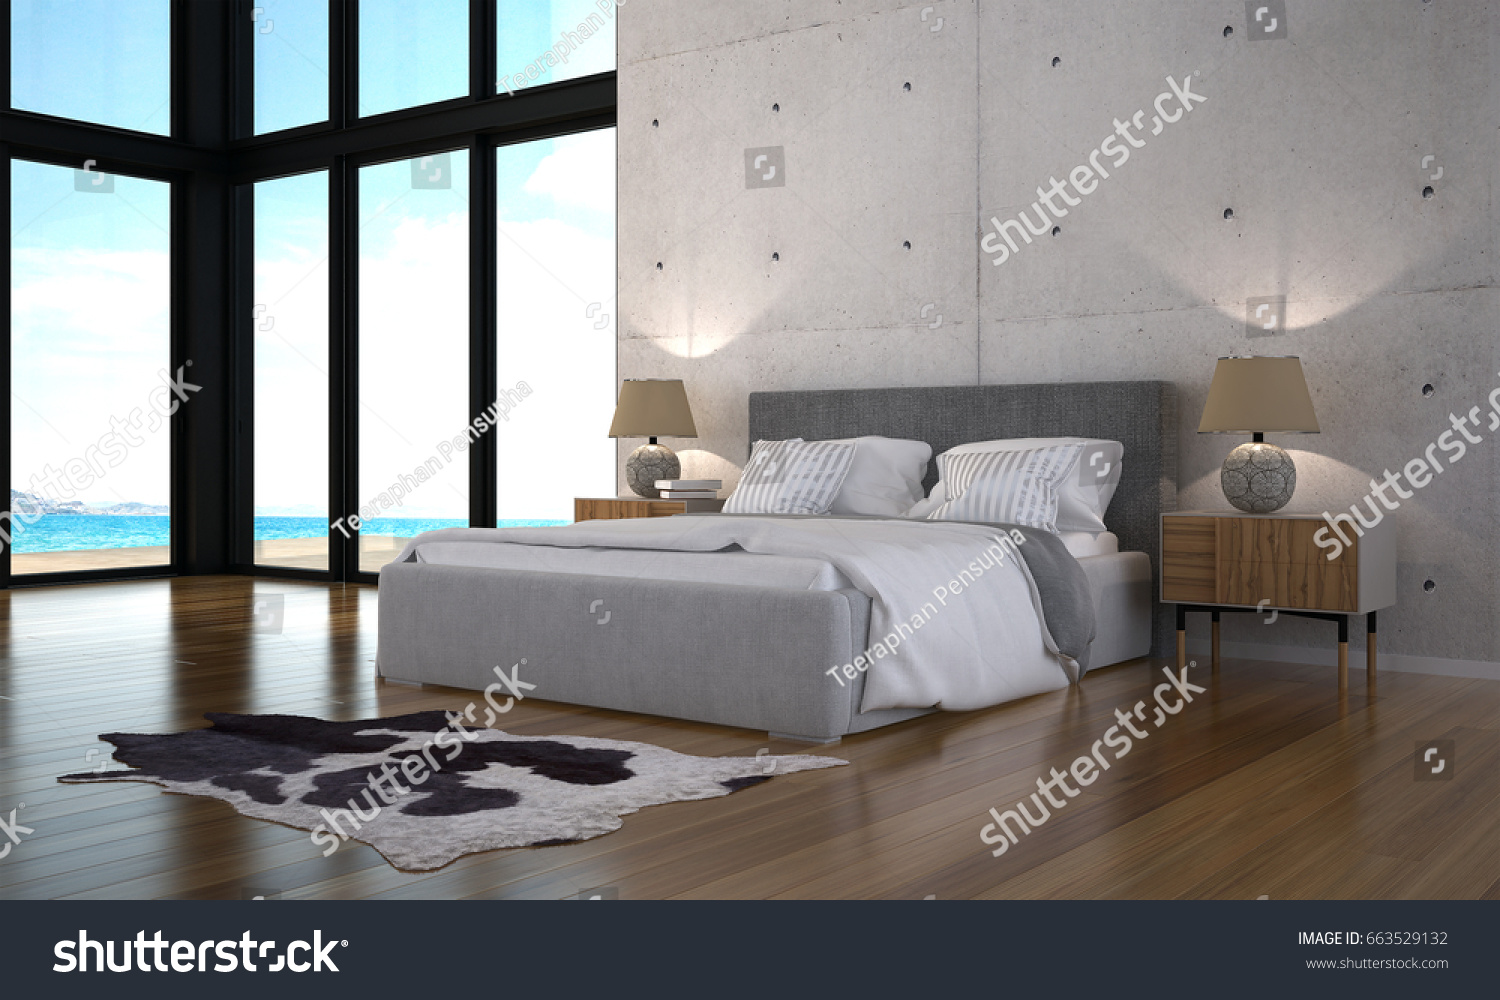 D rendering modern loft bedroom design stockillustration